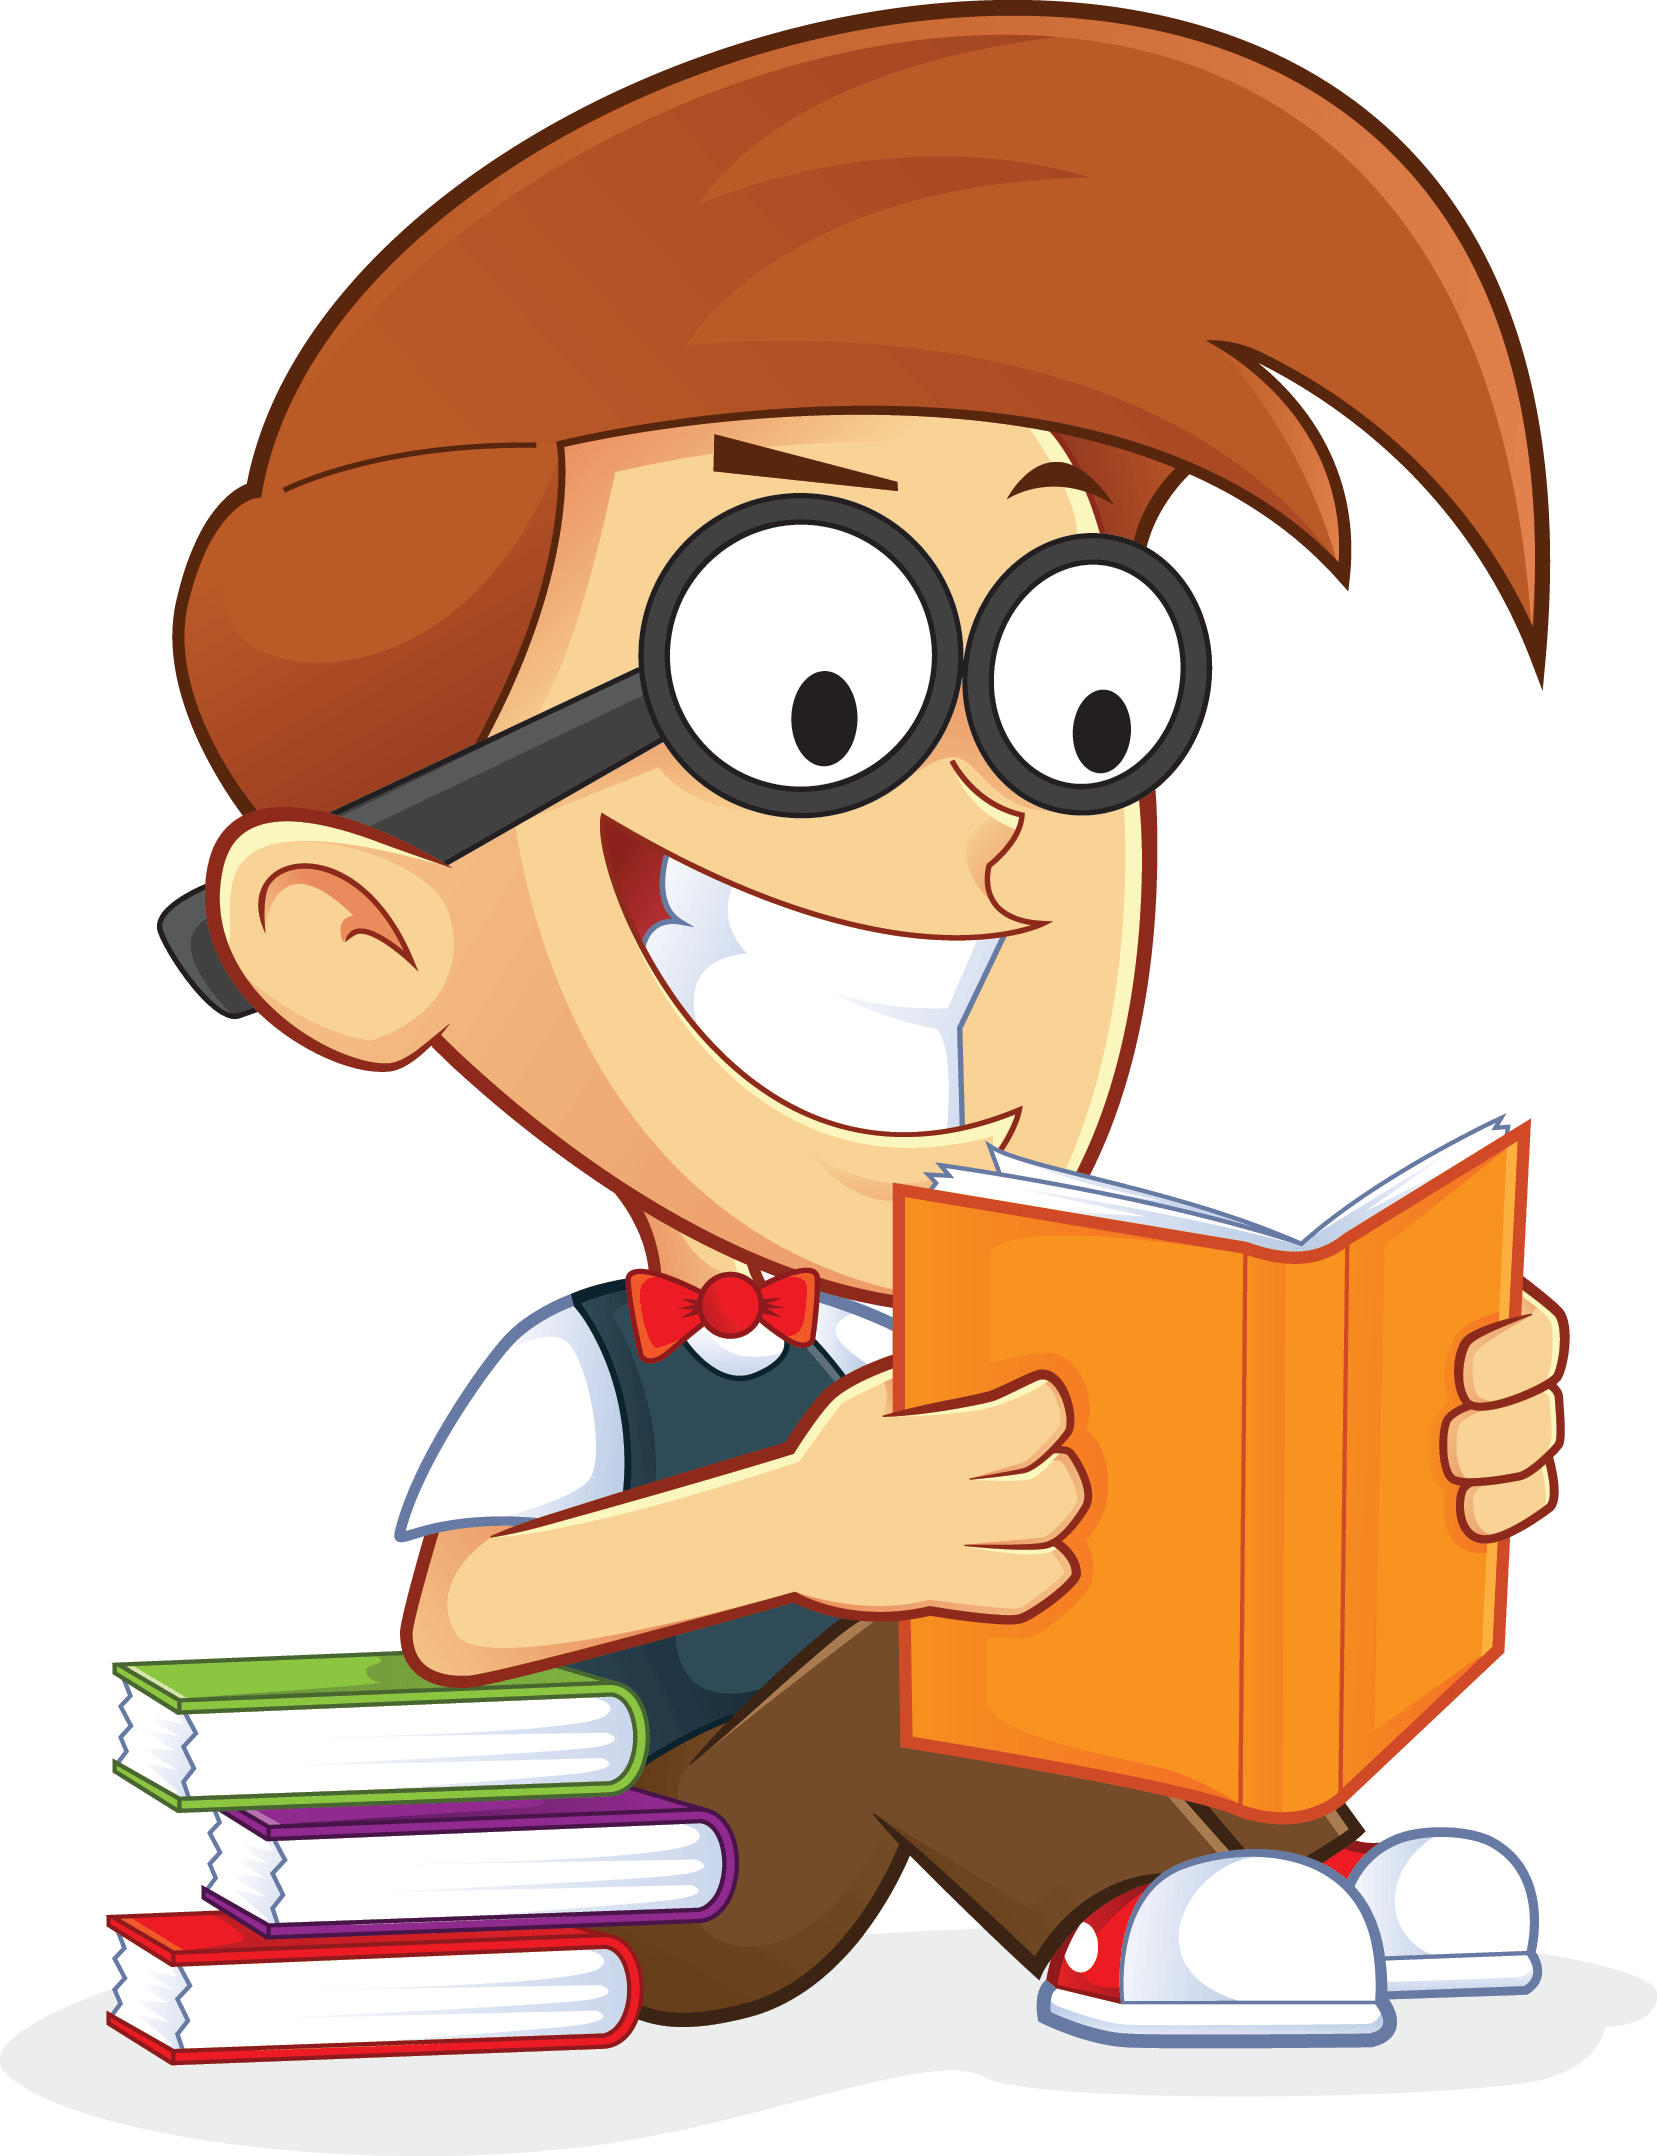 Free Nerd Geek Reading Book People High Resolution Clip Art.